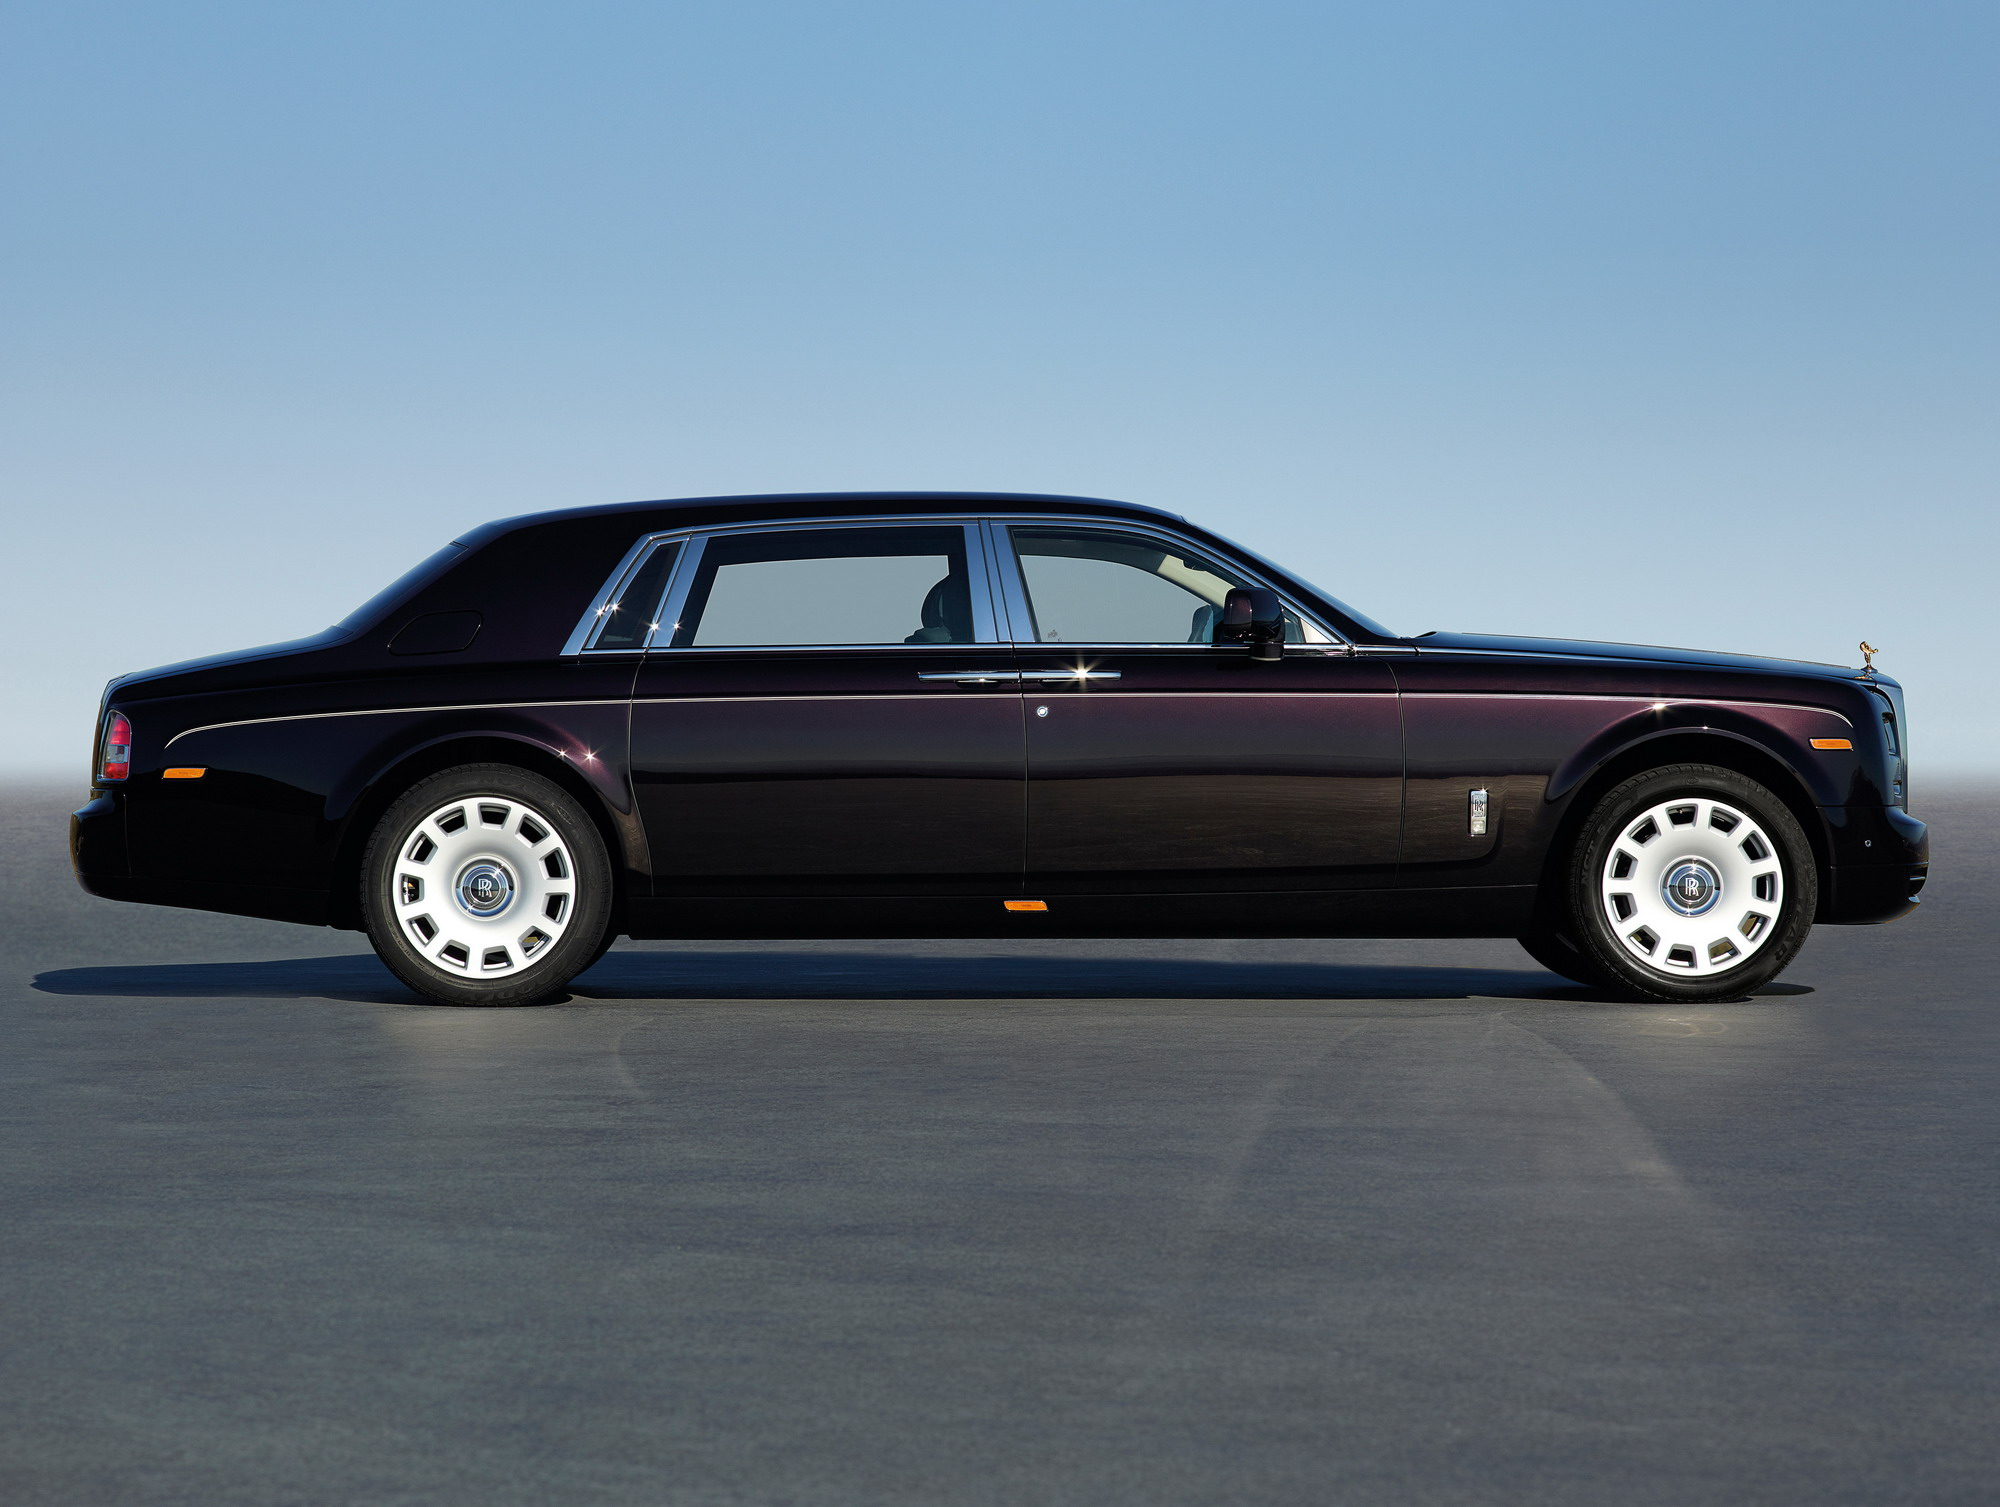 2013 Rolls Royce Phantom Extended Wheelbase Review  Gallery  Top